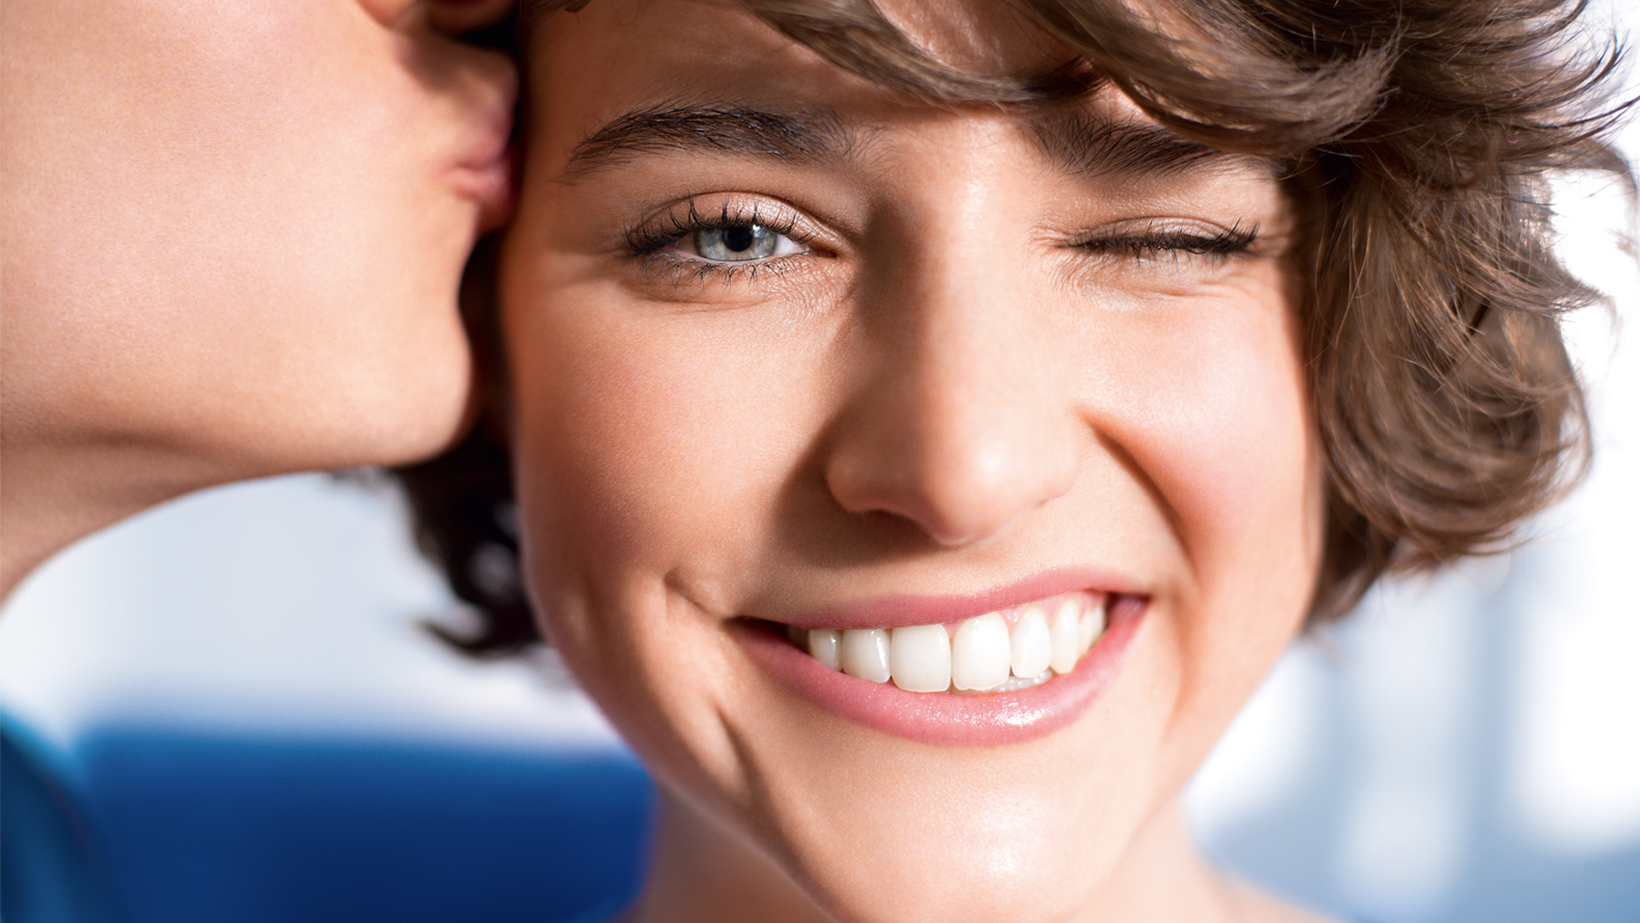 Smiling, brown-haired woman winking and being kissed on the temple.